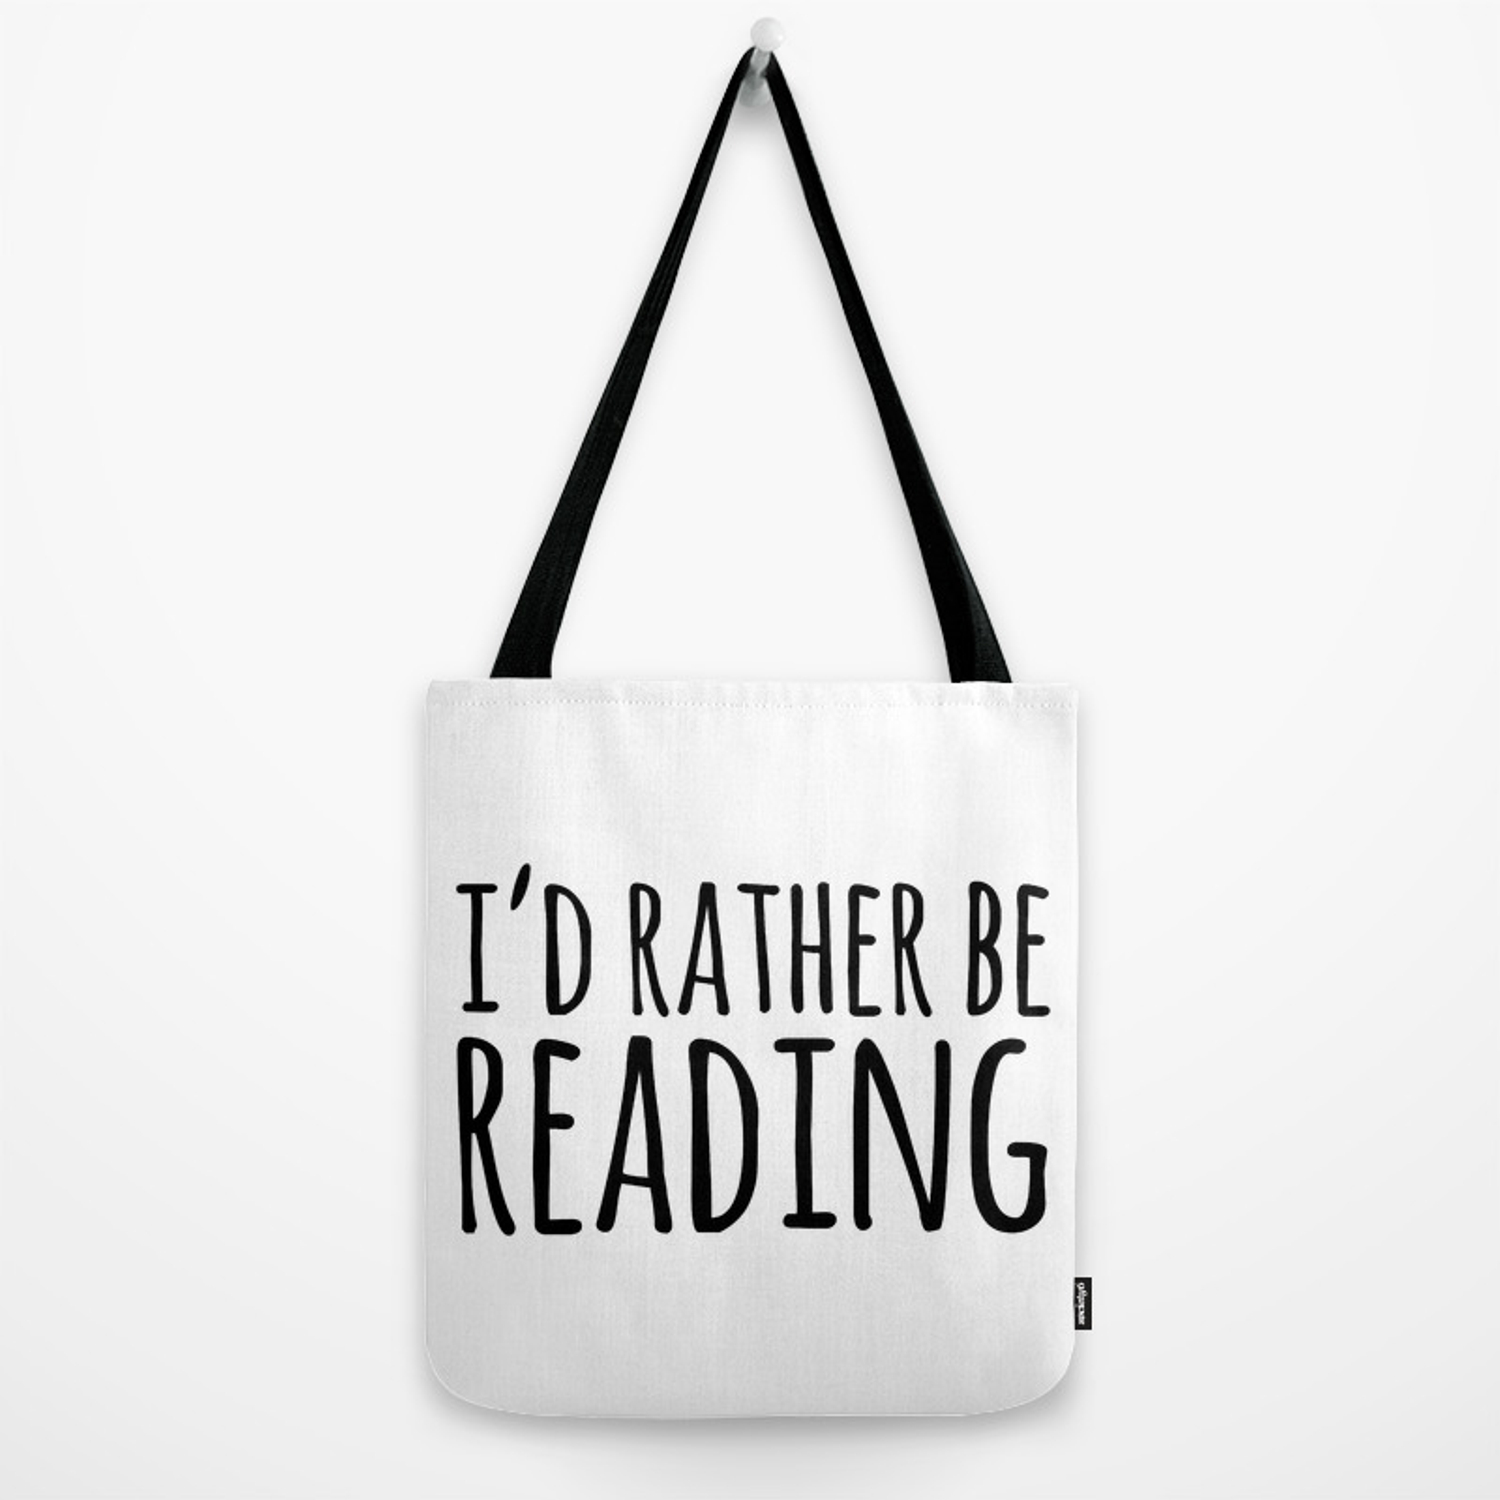 I/'d rather be reading tote customized tote bag IRBRT